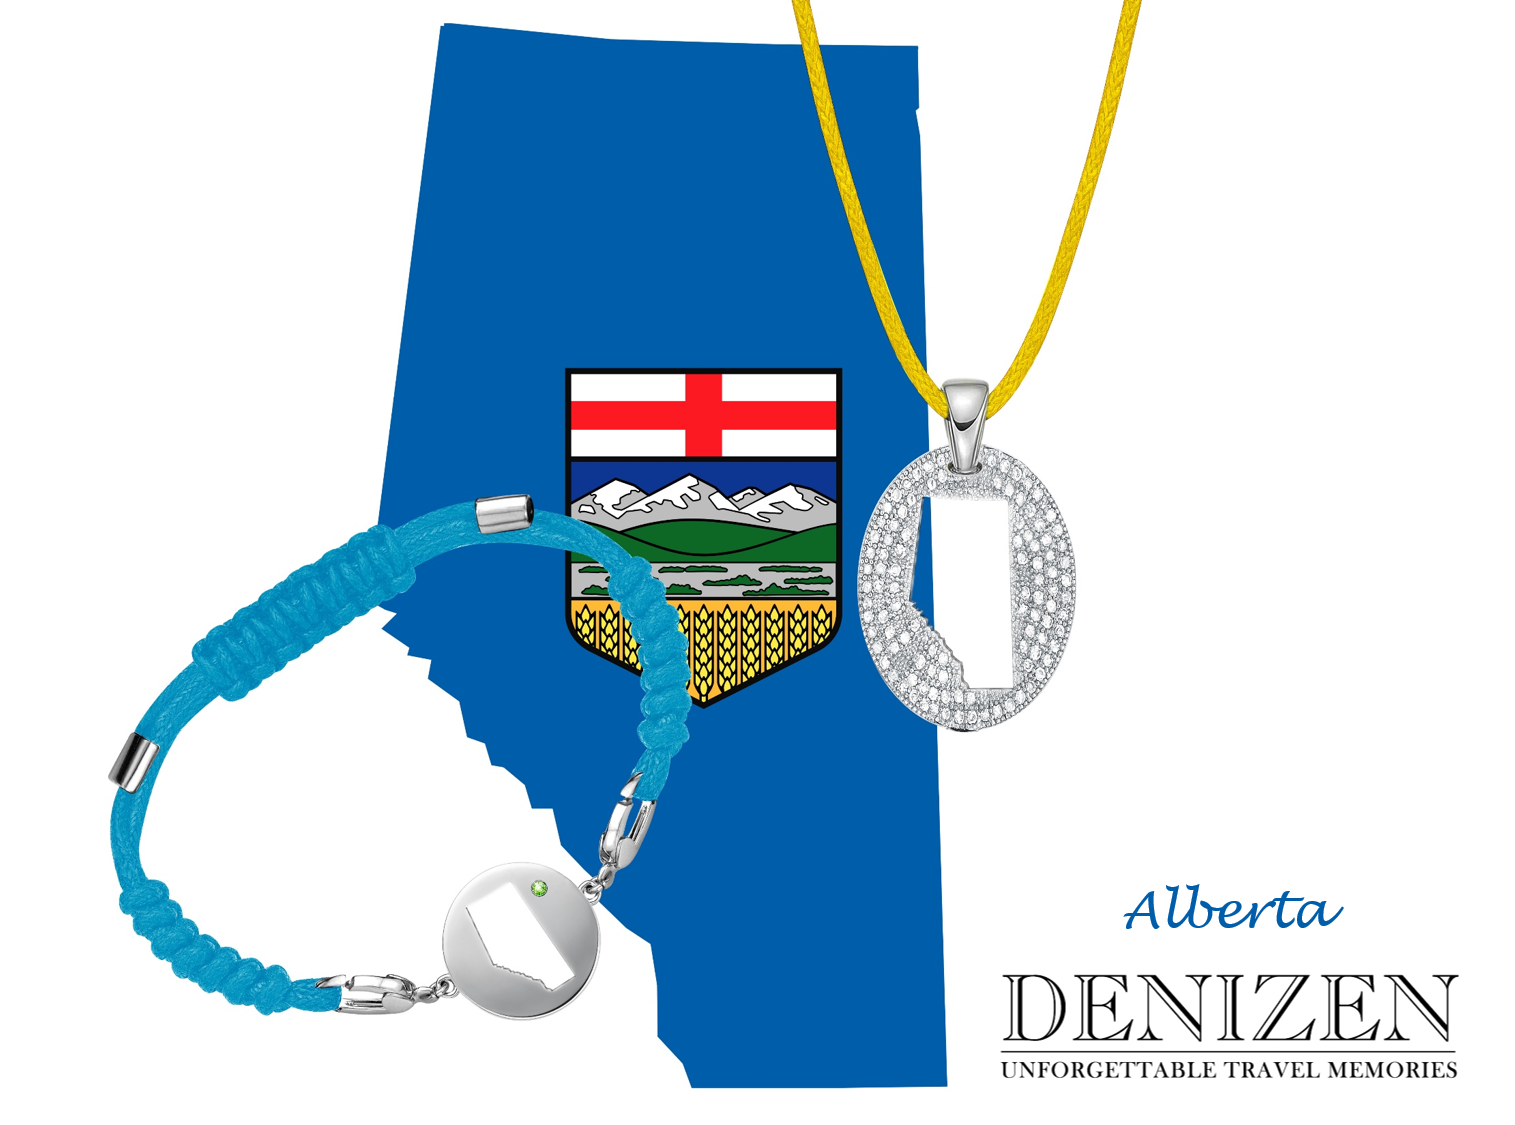 denizen bracelet and necklace of Alberta